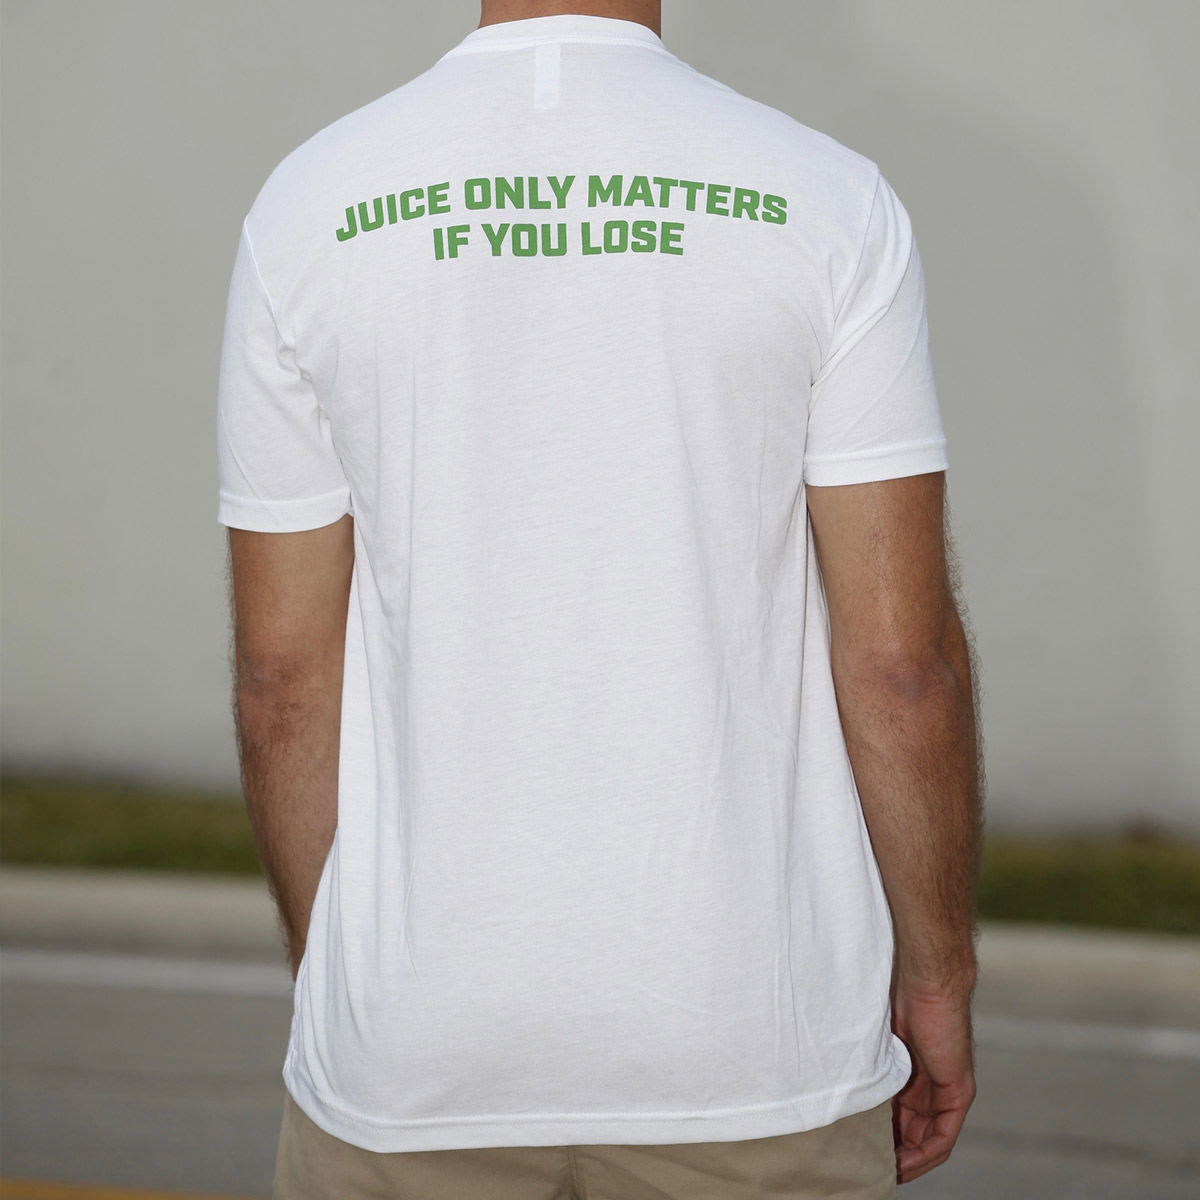 Juice only matters if you lose - white t shirt - back